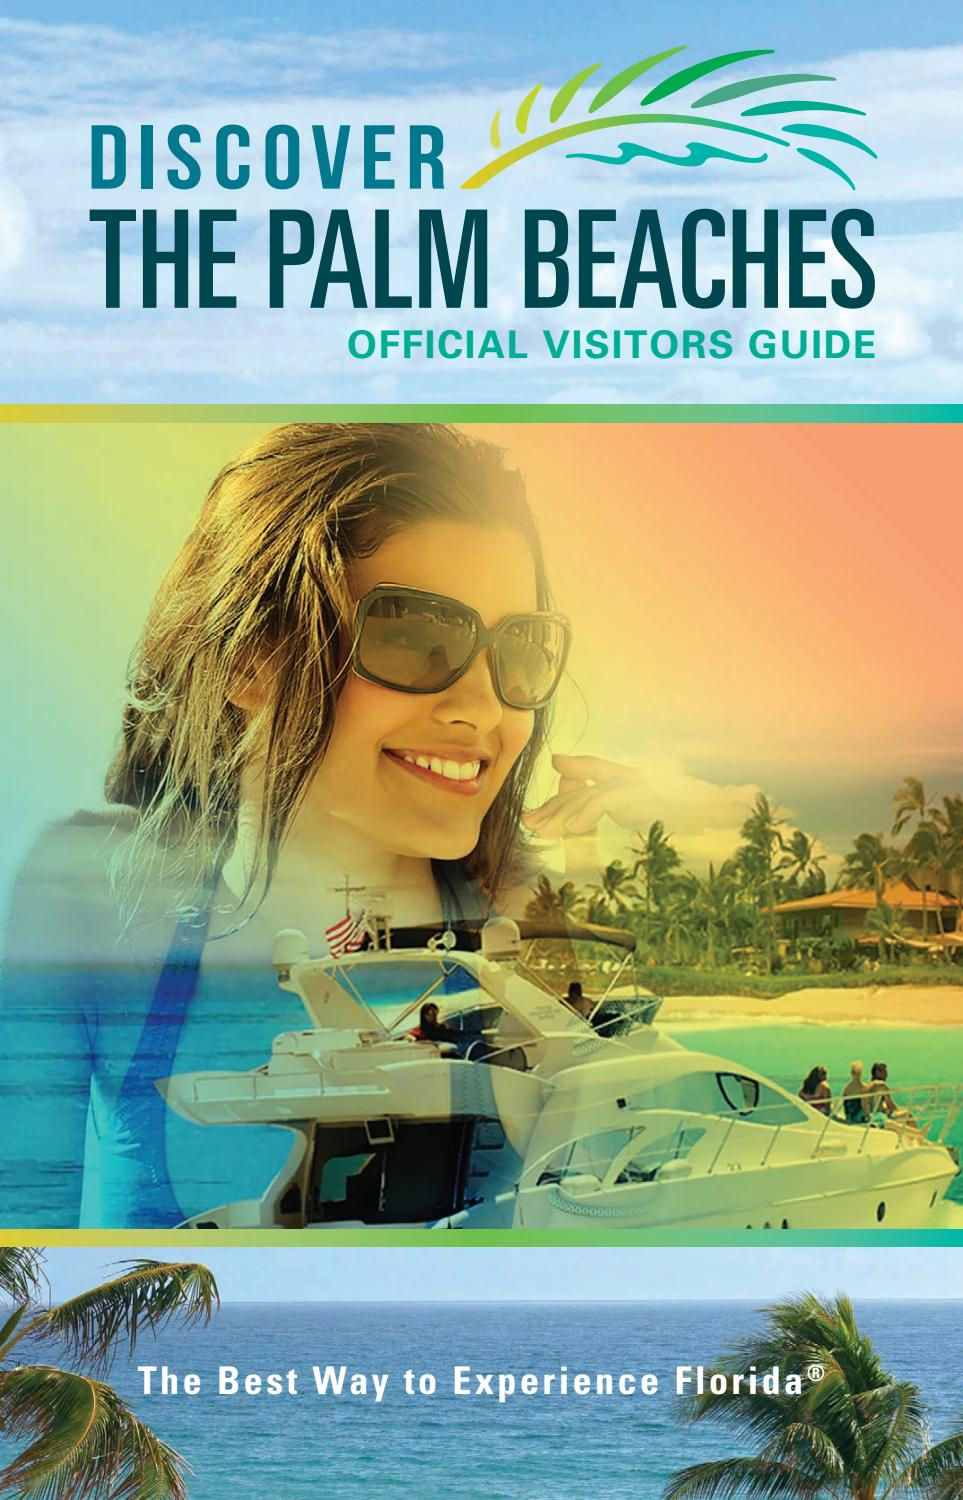 f07193bcf42 Discover The Palm Beaches Visitors Guide 2017 by Passport Publications    Media Corporation - issuu